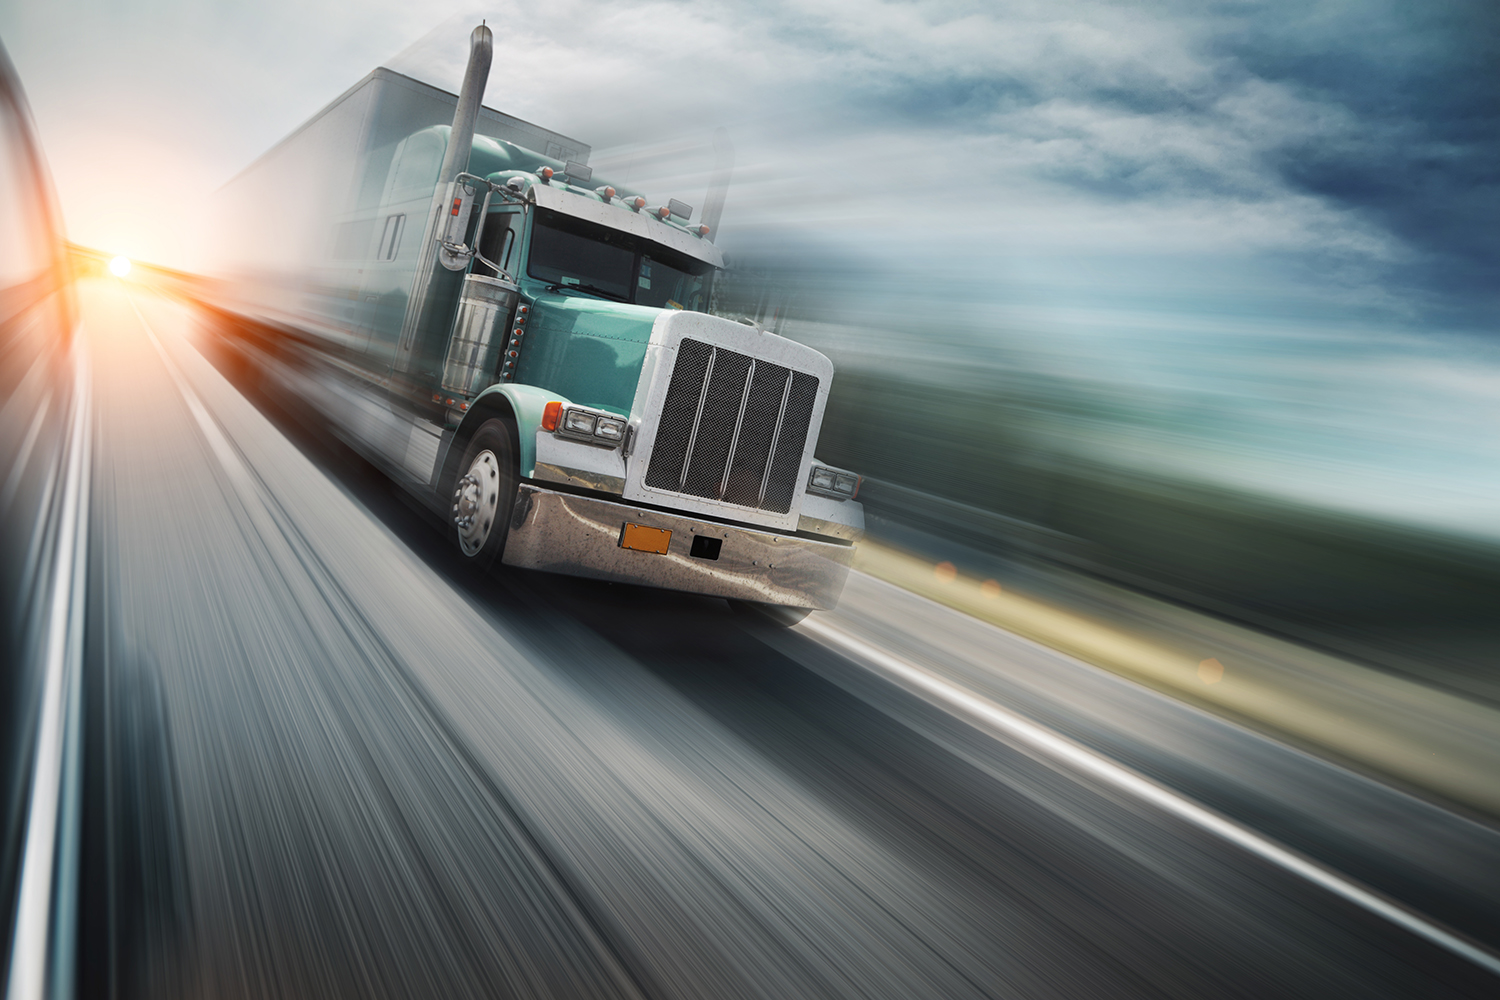 South Carolina's Heavy Duty Truck Collision Repair & Frame Alignment Solution